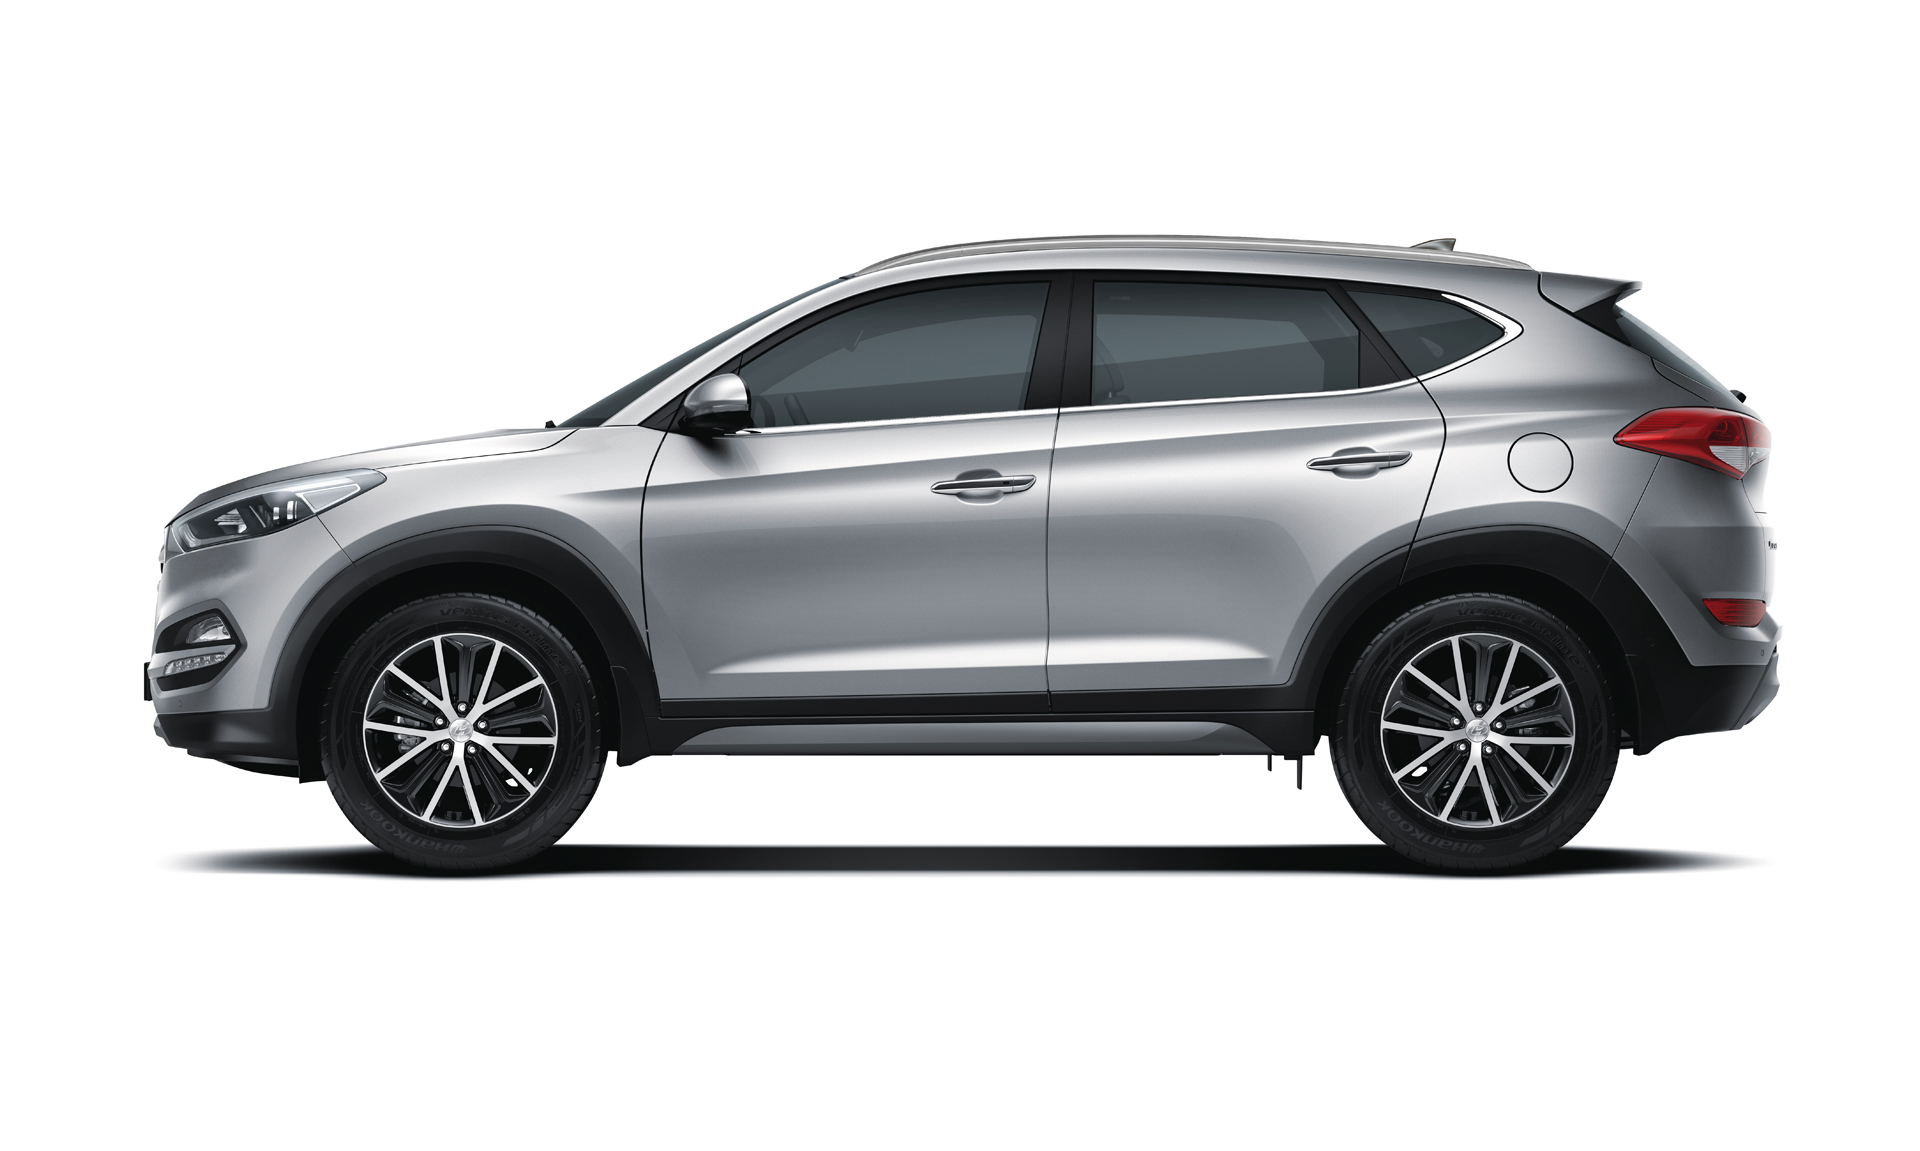 Hyundai Motor India launched its premium SUV Tucson with 4-wheel drive (4WD) system priced at Rs 25.19 lakh (ex-showroom Delhi). The company has introduced 4WD system only in the top-end diesel variant of the model.